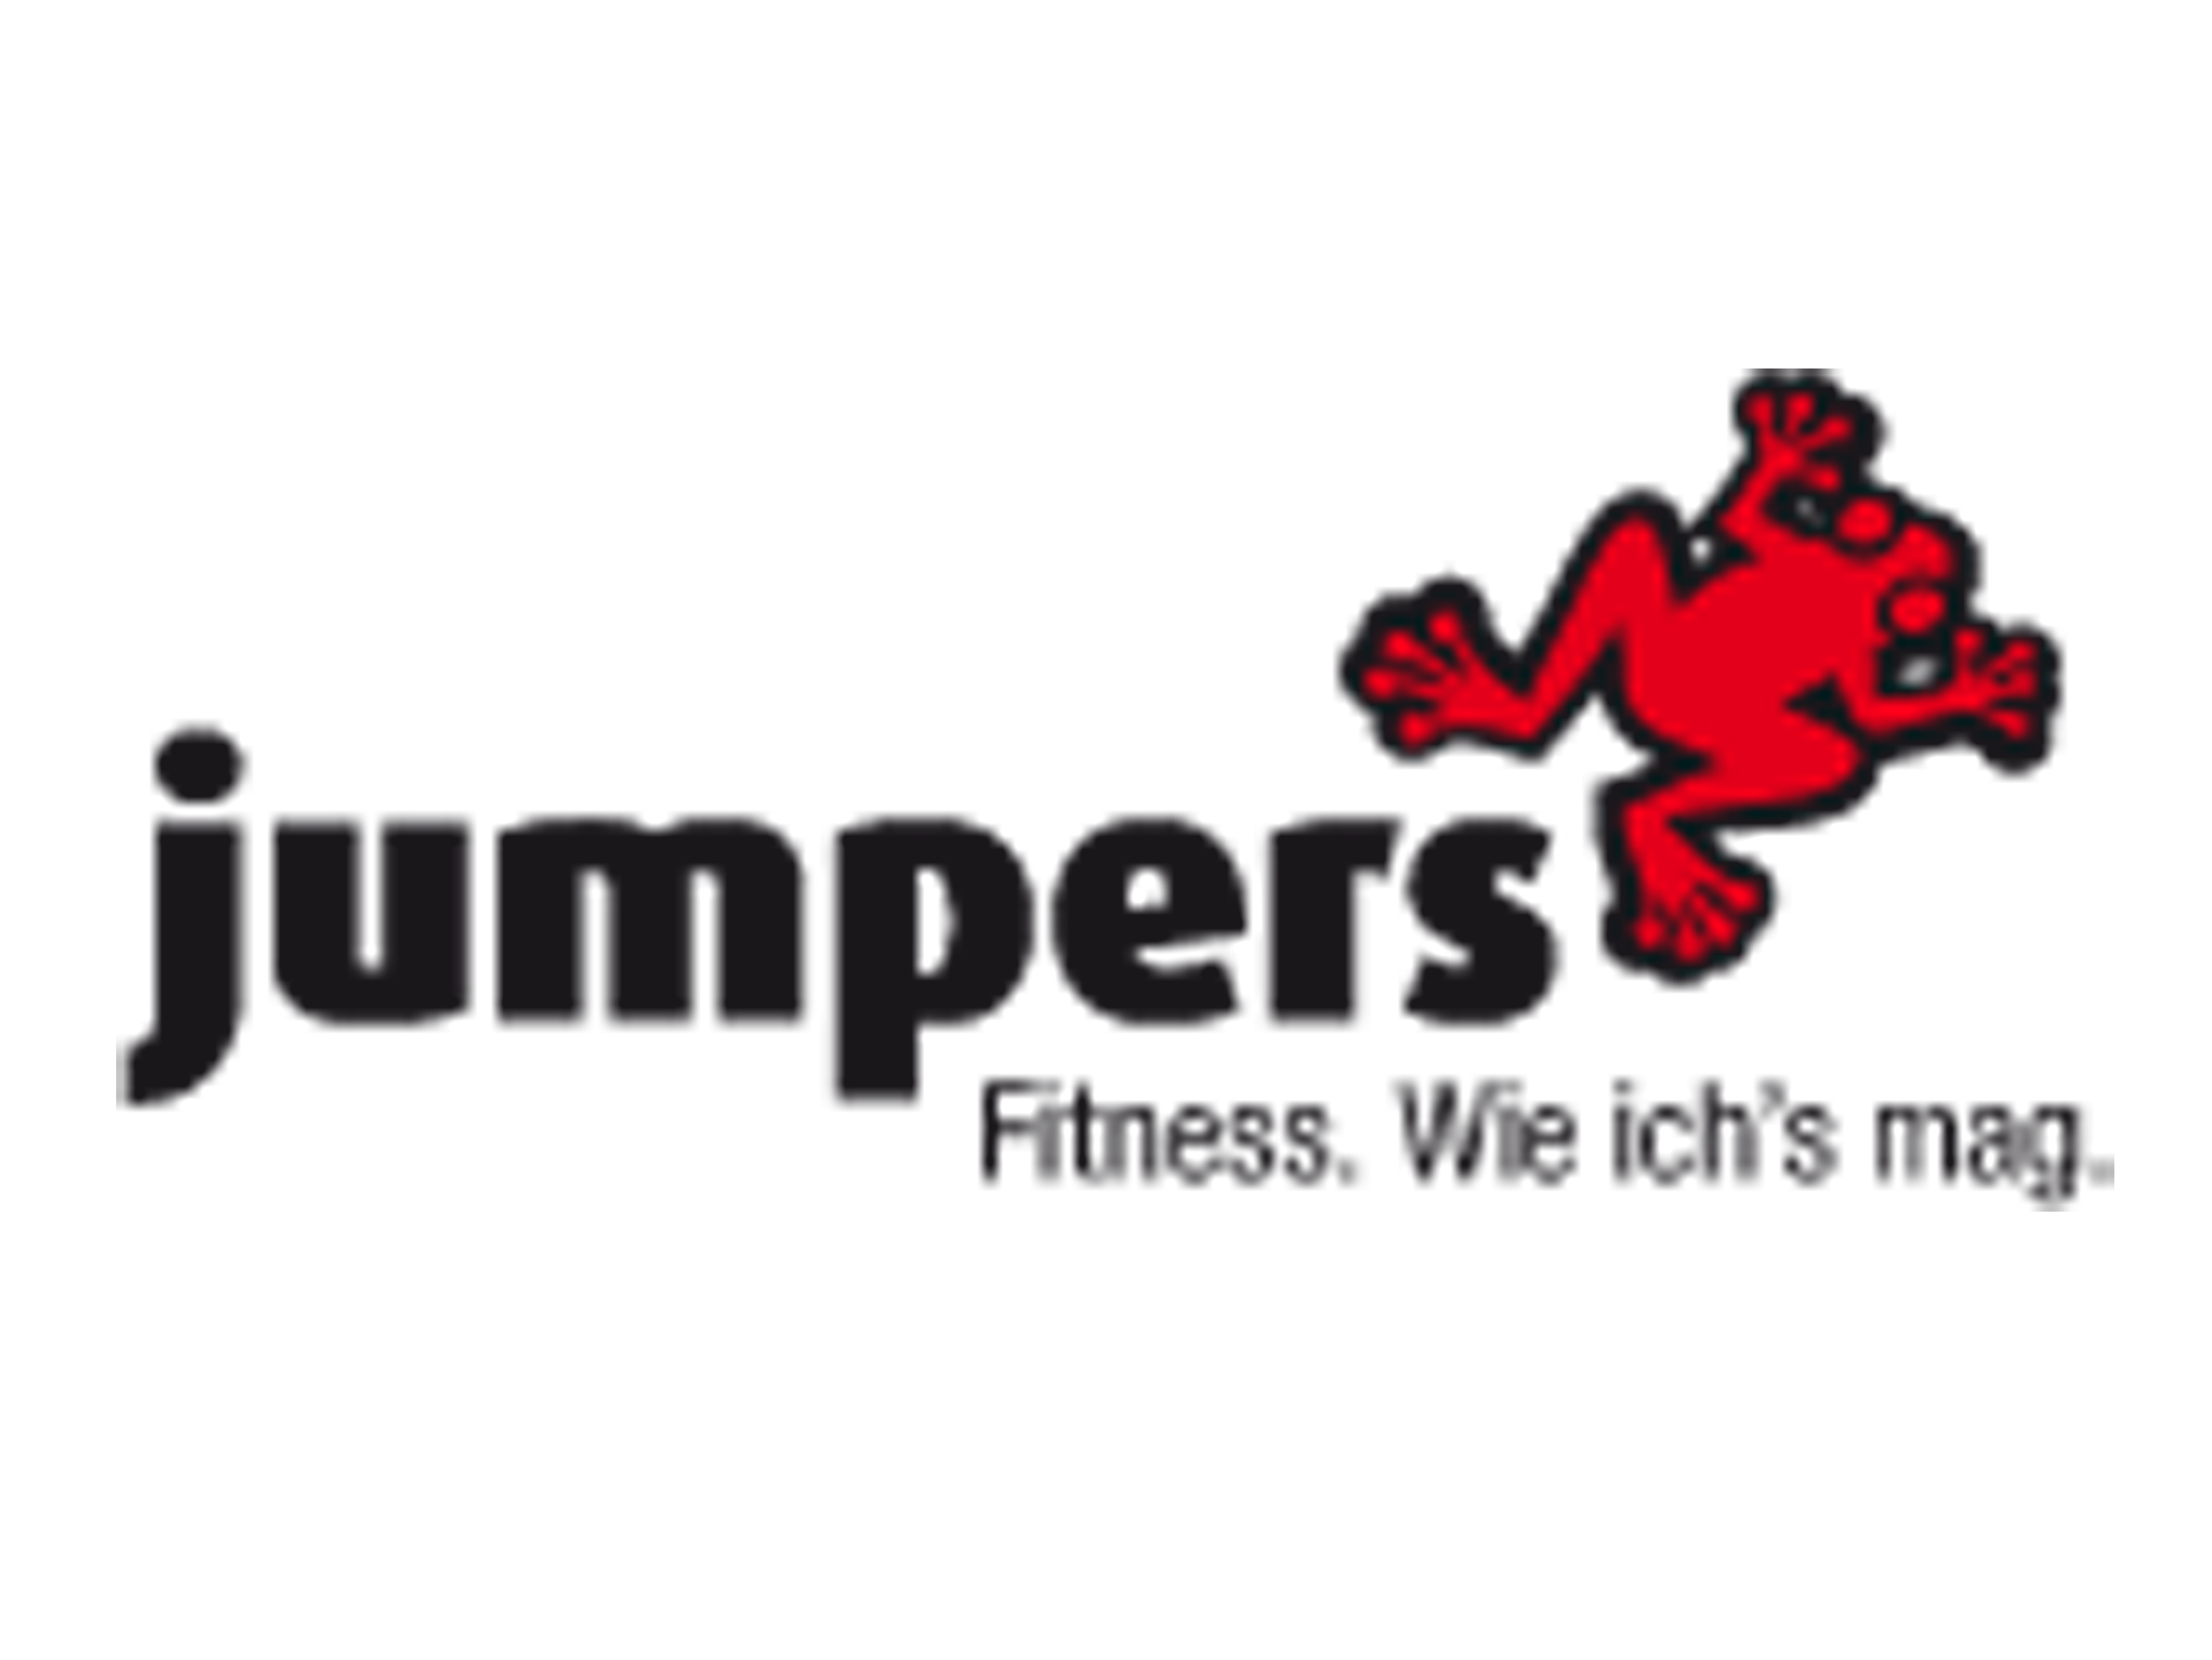 Jumper Fitness Jumpers Fitness